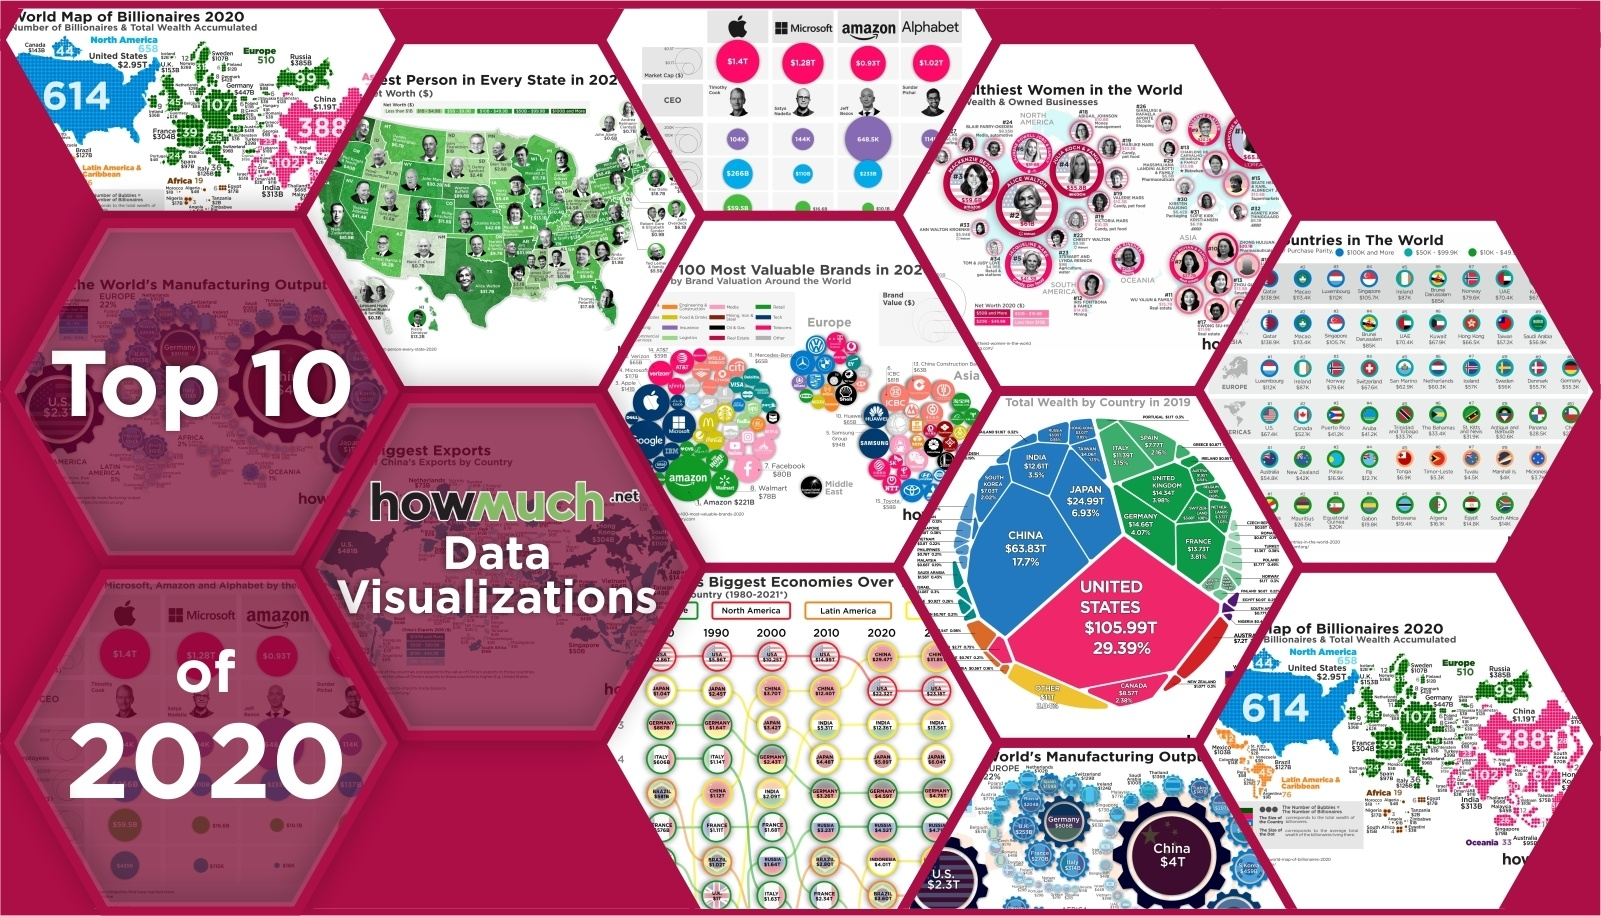 Top 10 Visualizations of 2020